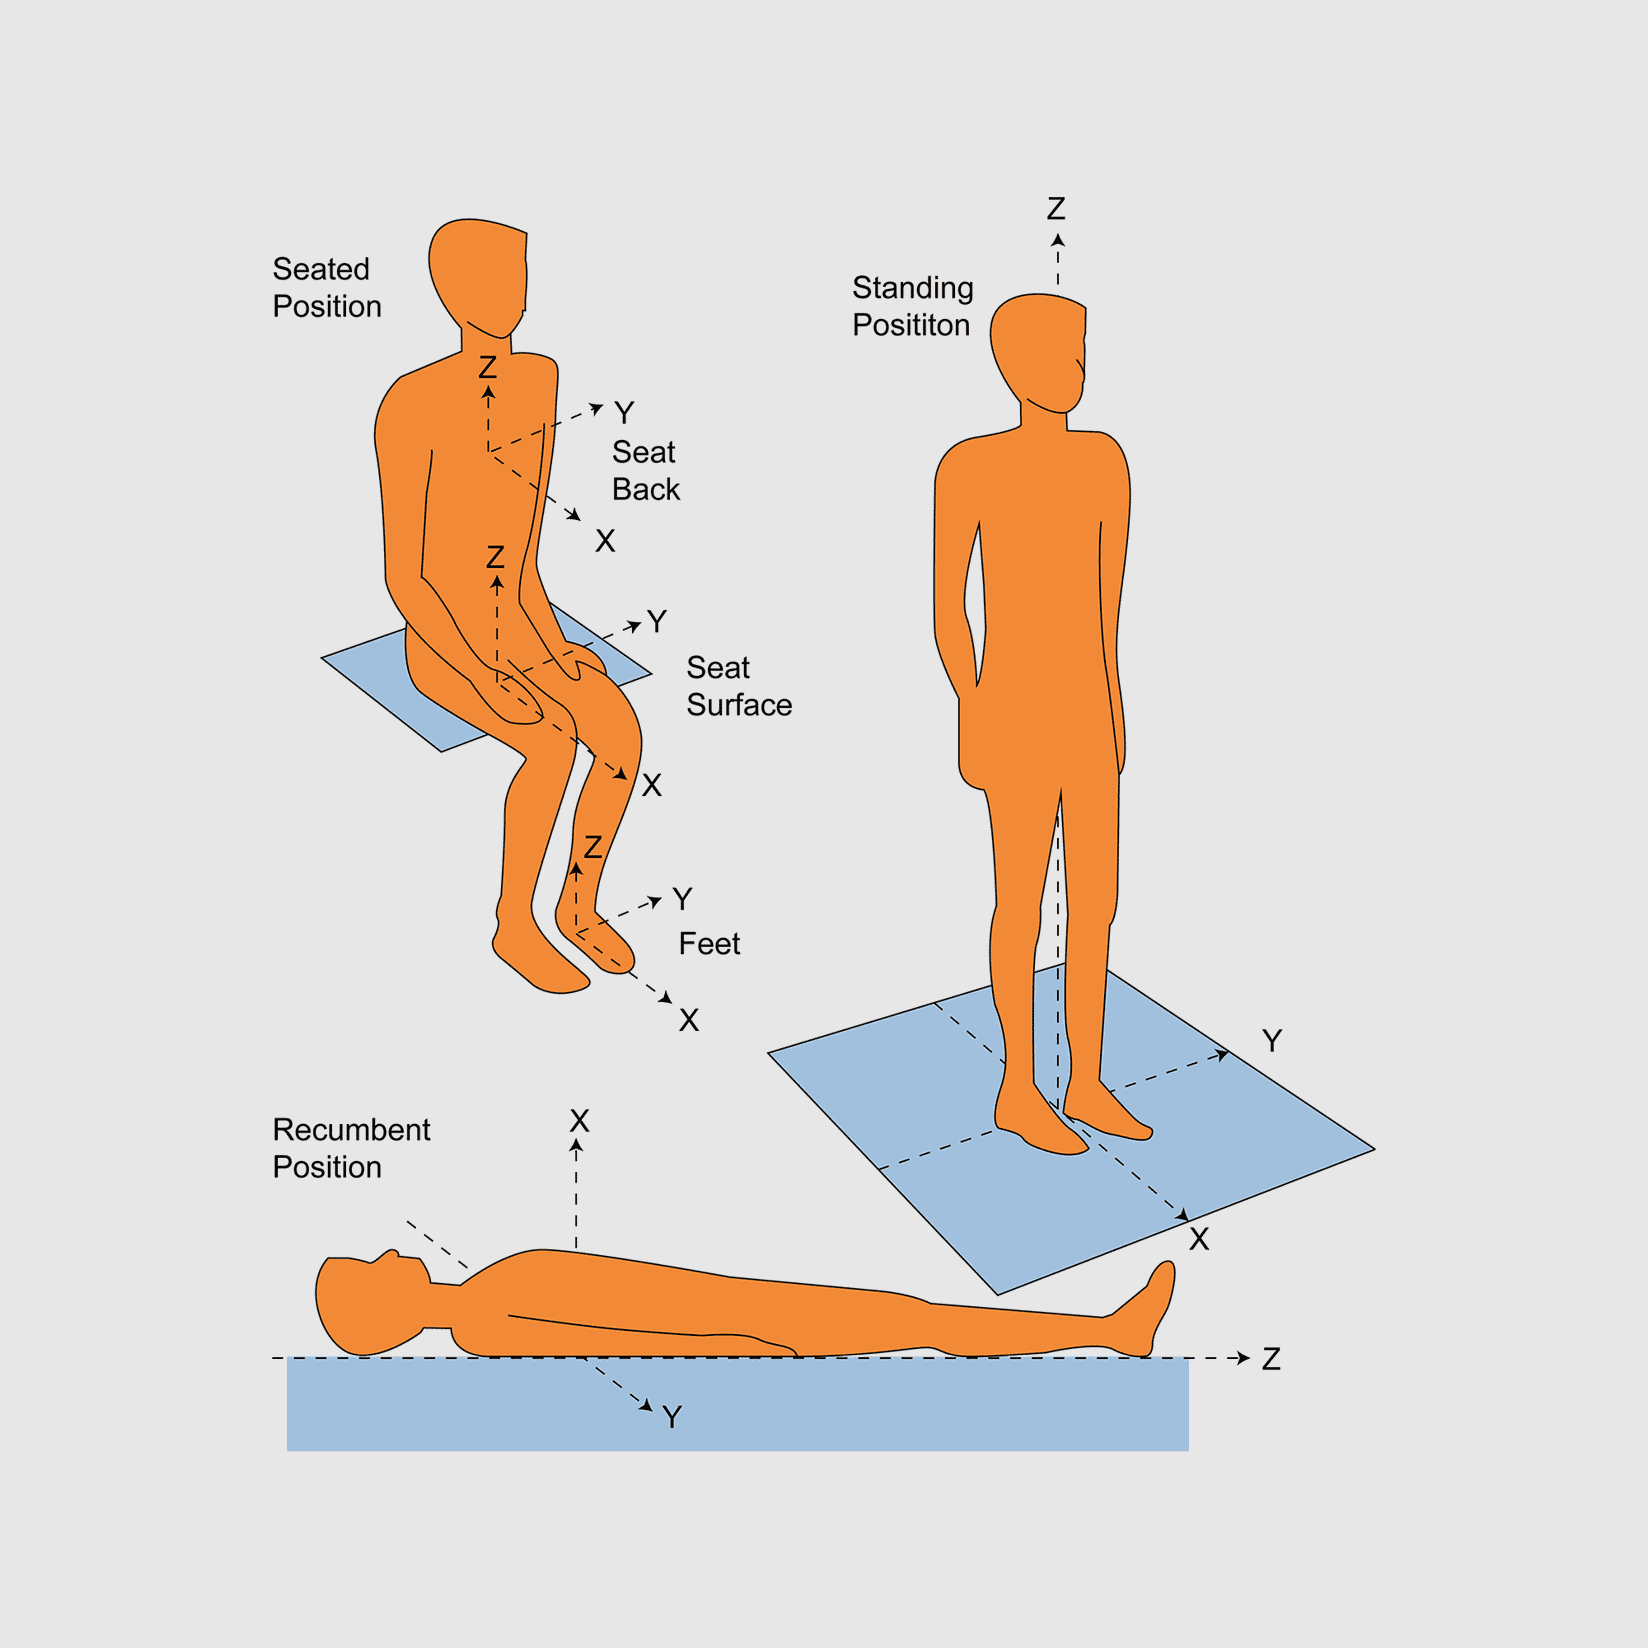 Whole Body Vibration Measurement